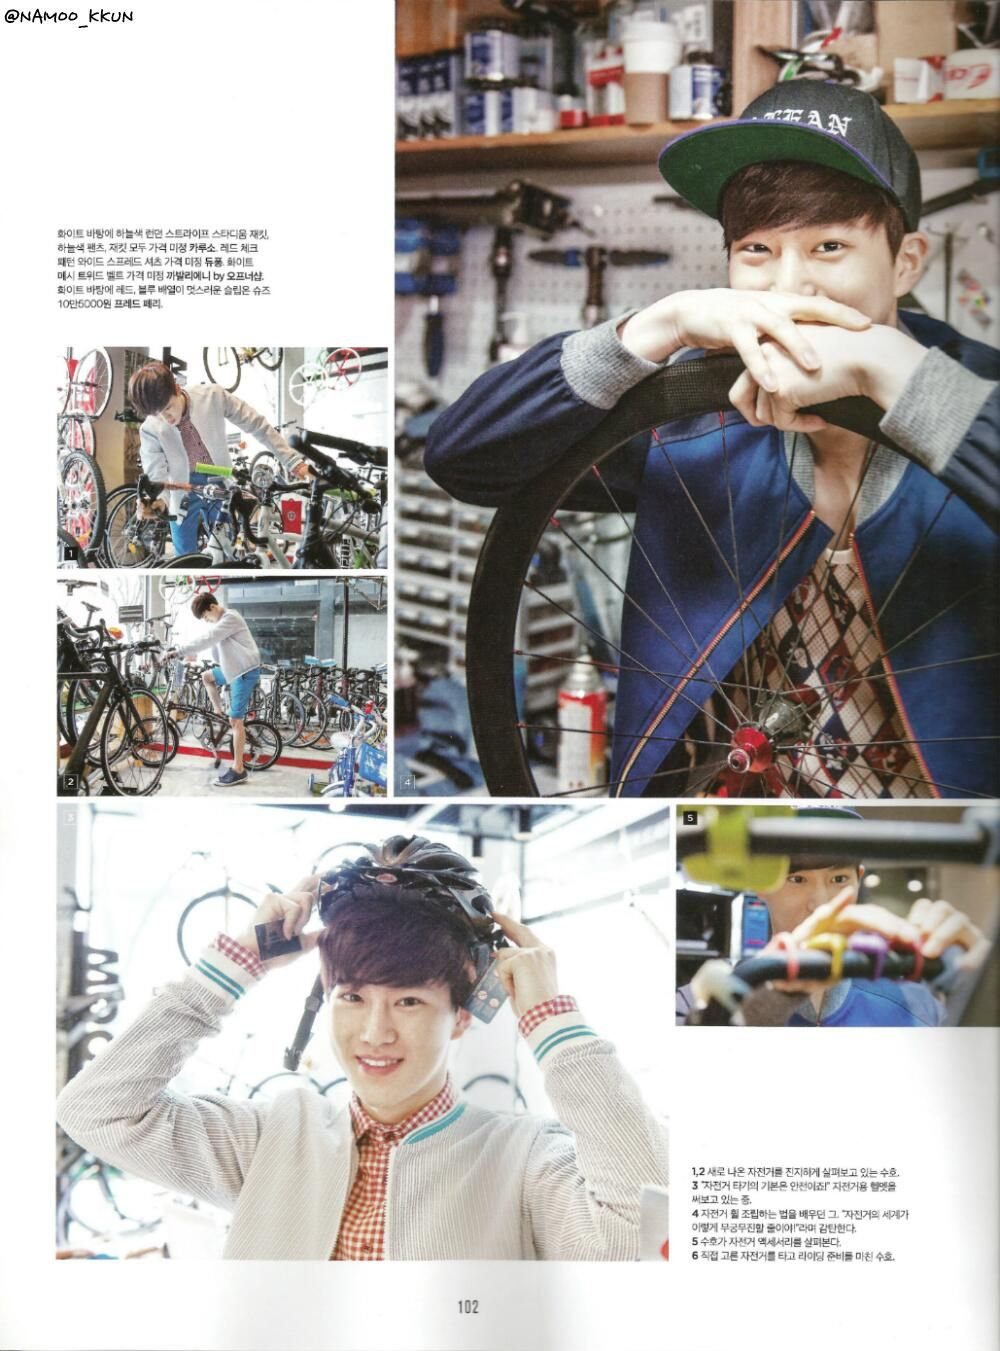 [SCAN] The Celebrity Magazine April issue SUHO #2 Cr.FROM_20111229 -Y- pic.twitter.com/tETOSyoUvO